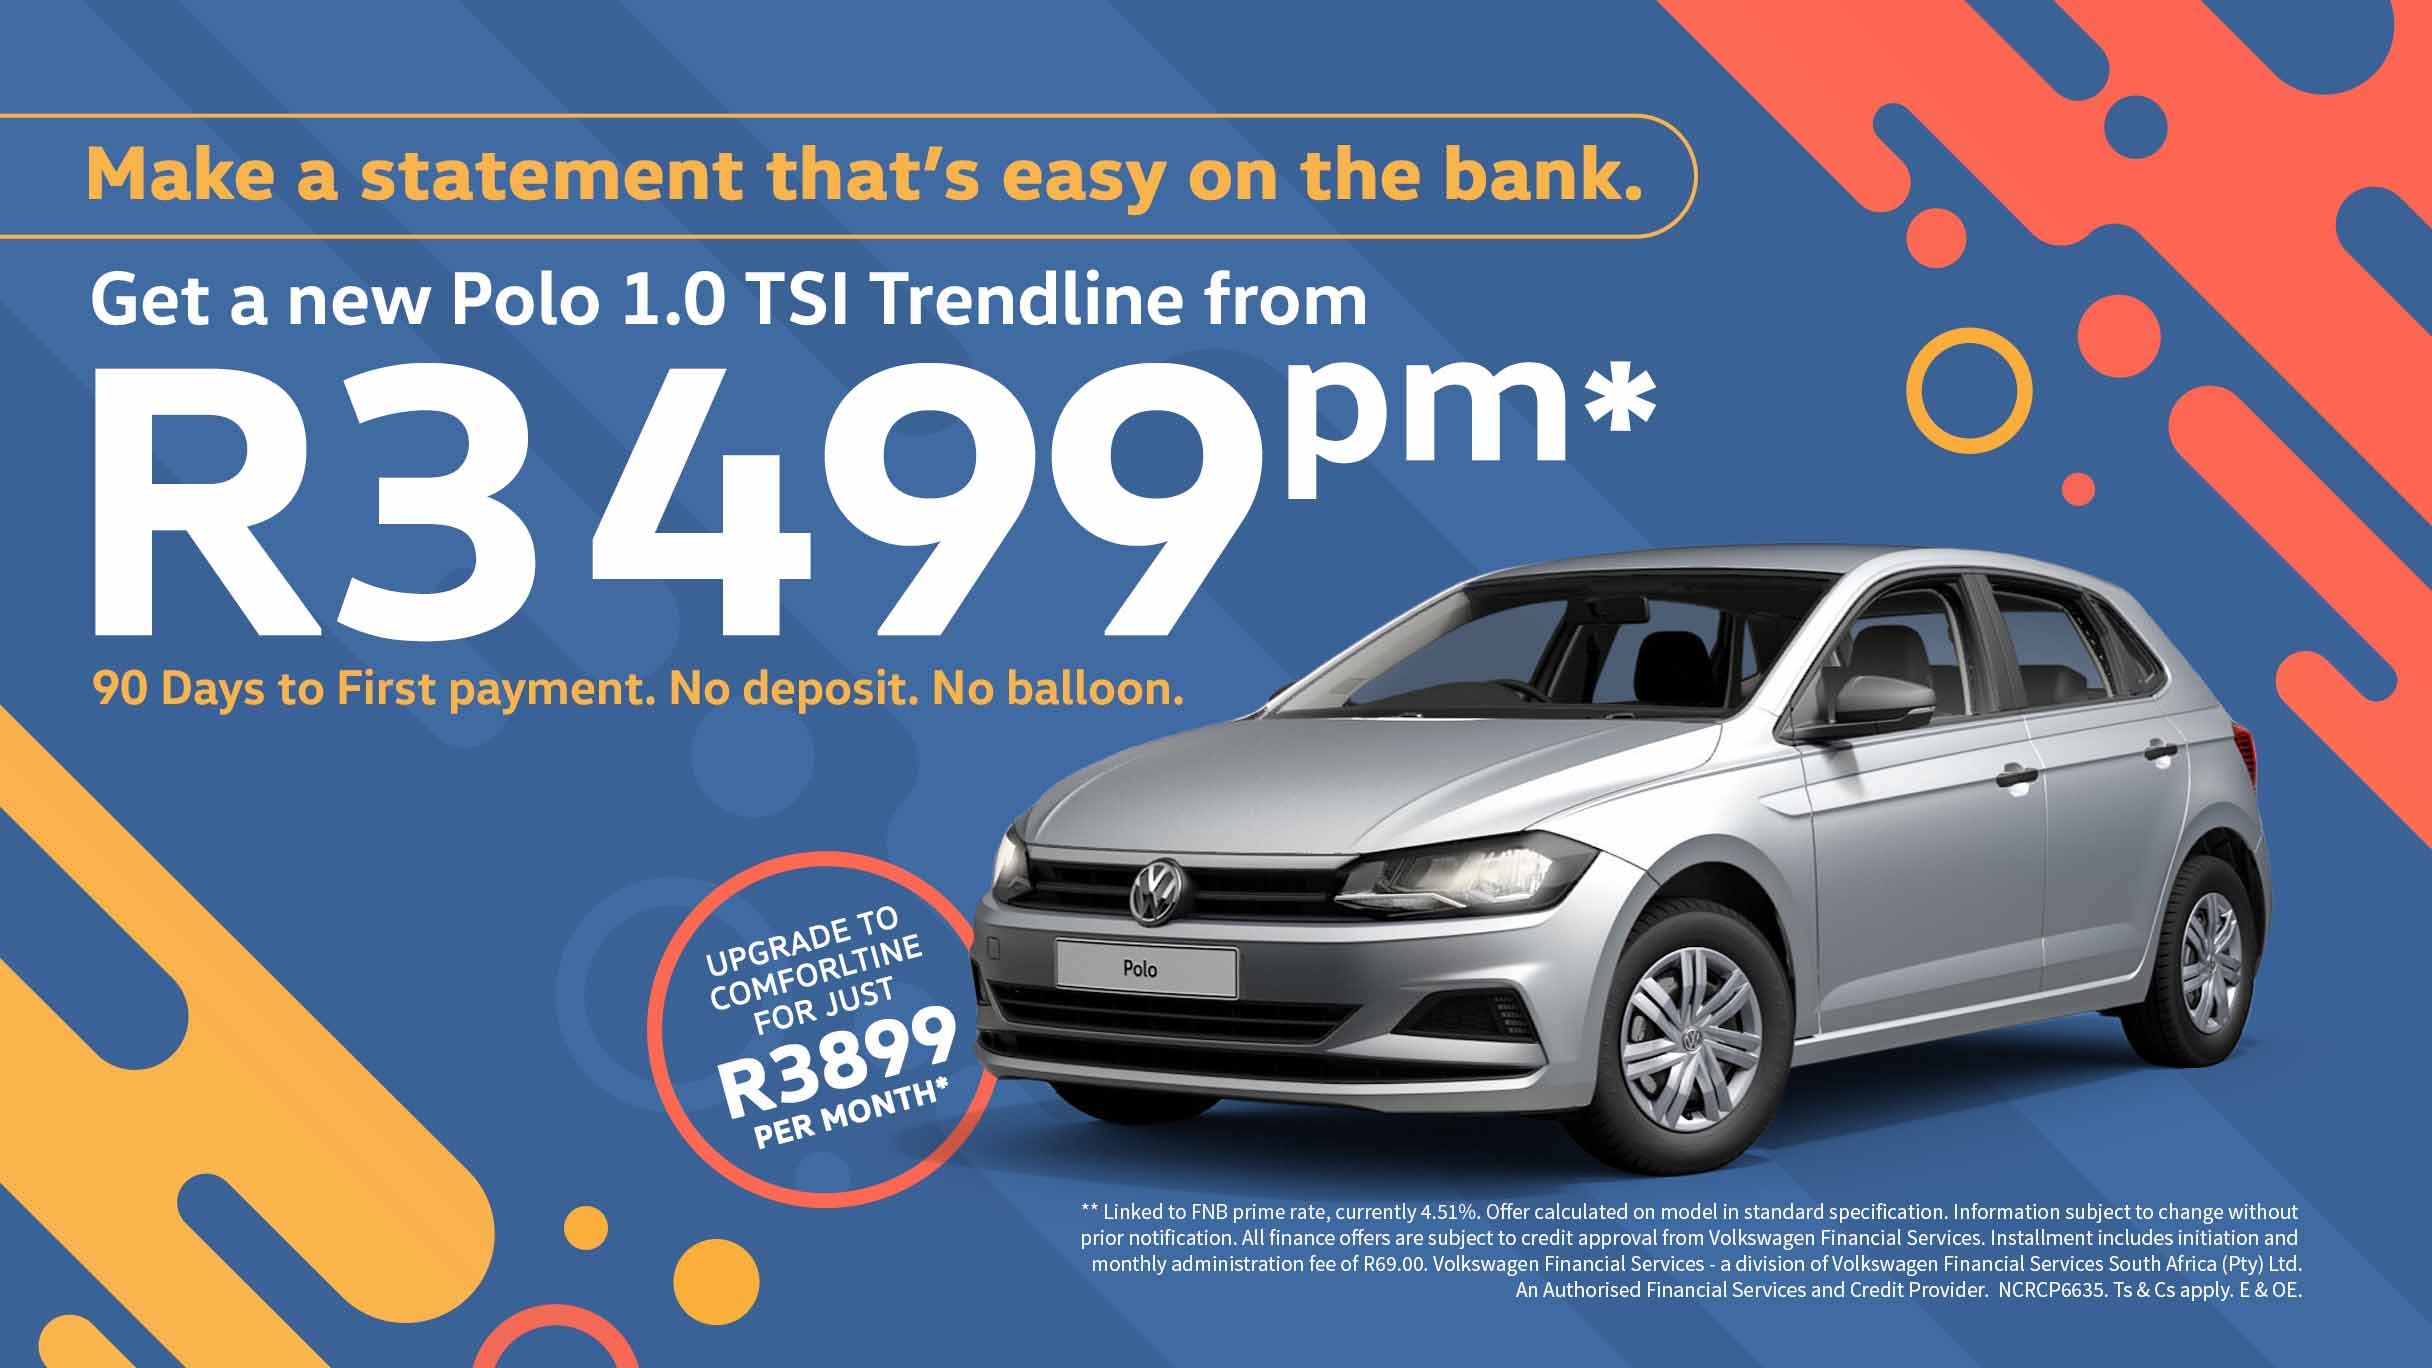 VW Polo Trendline special offer